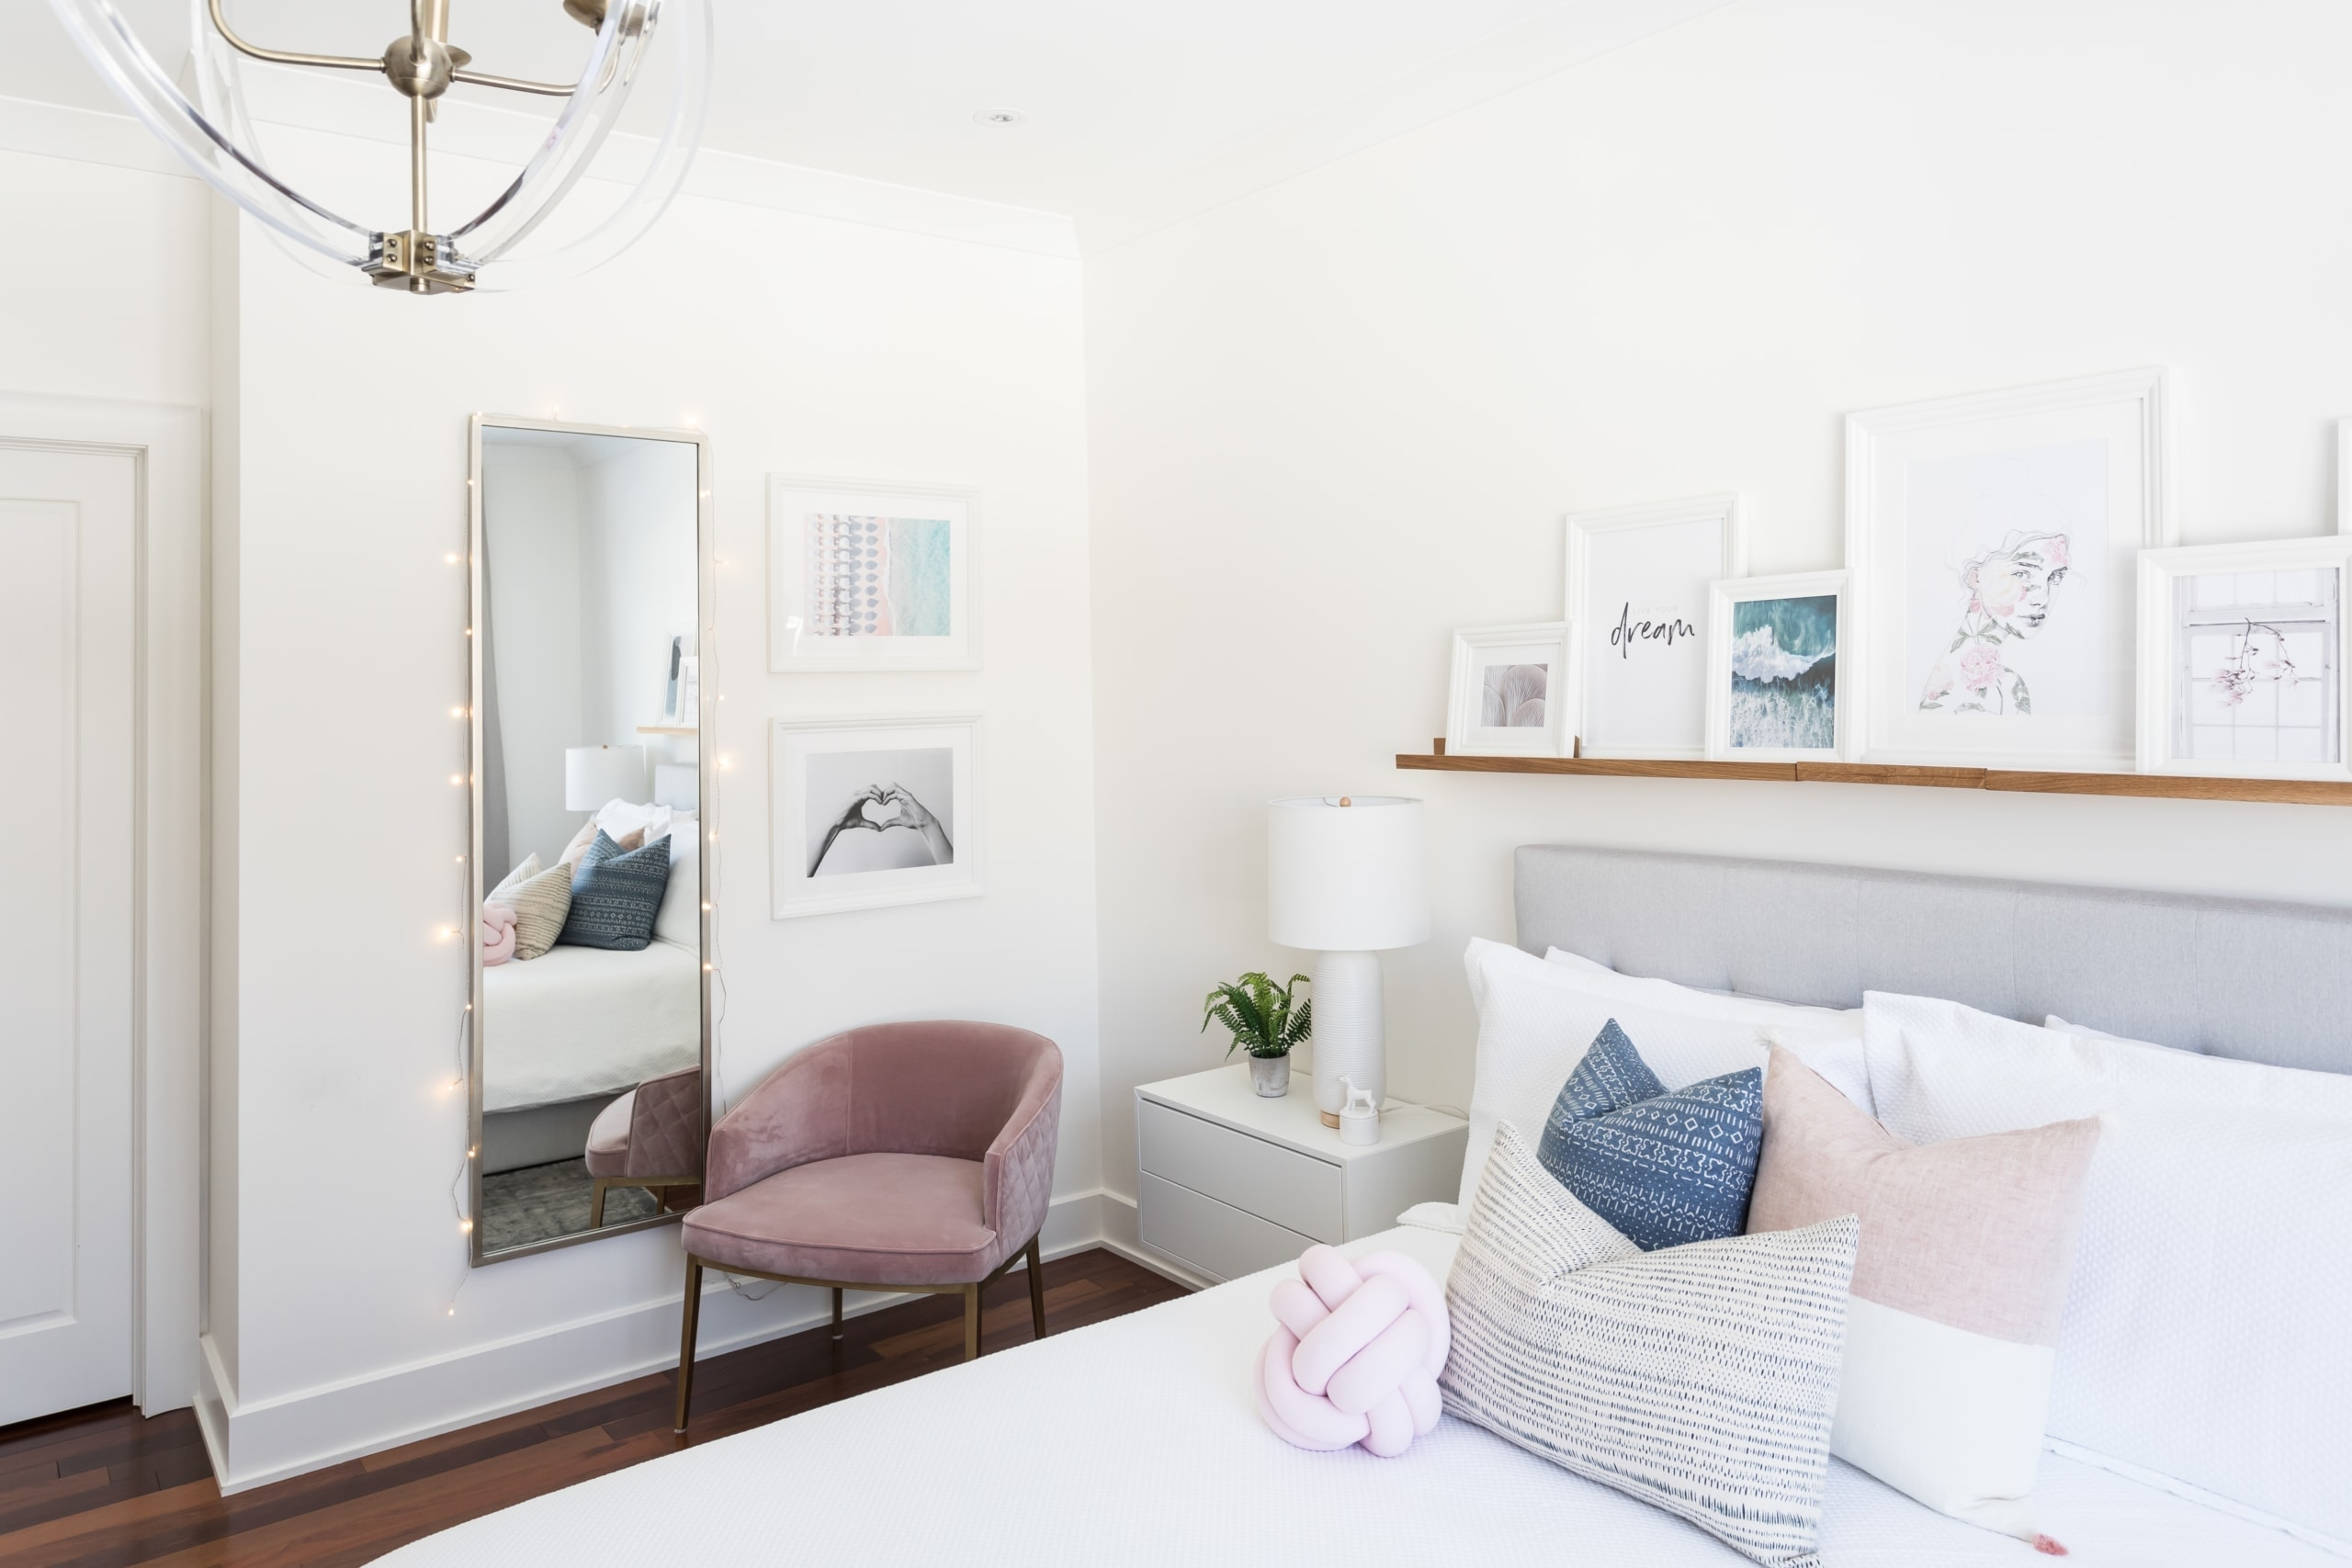 Large bed with pictures on a shelf above it in master bedroom